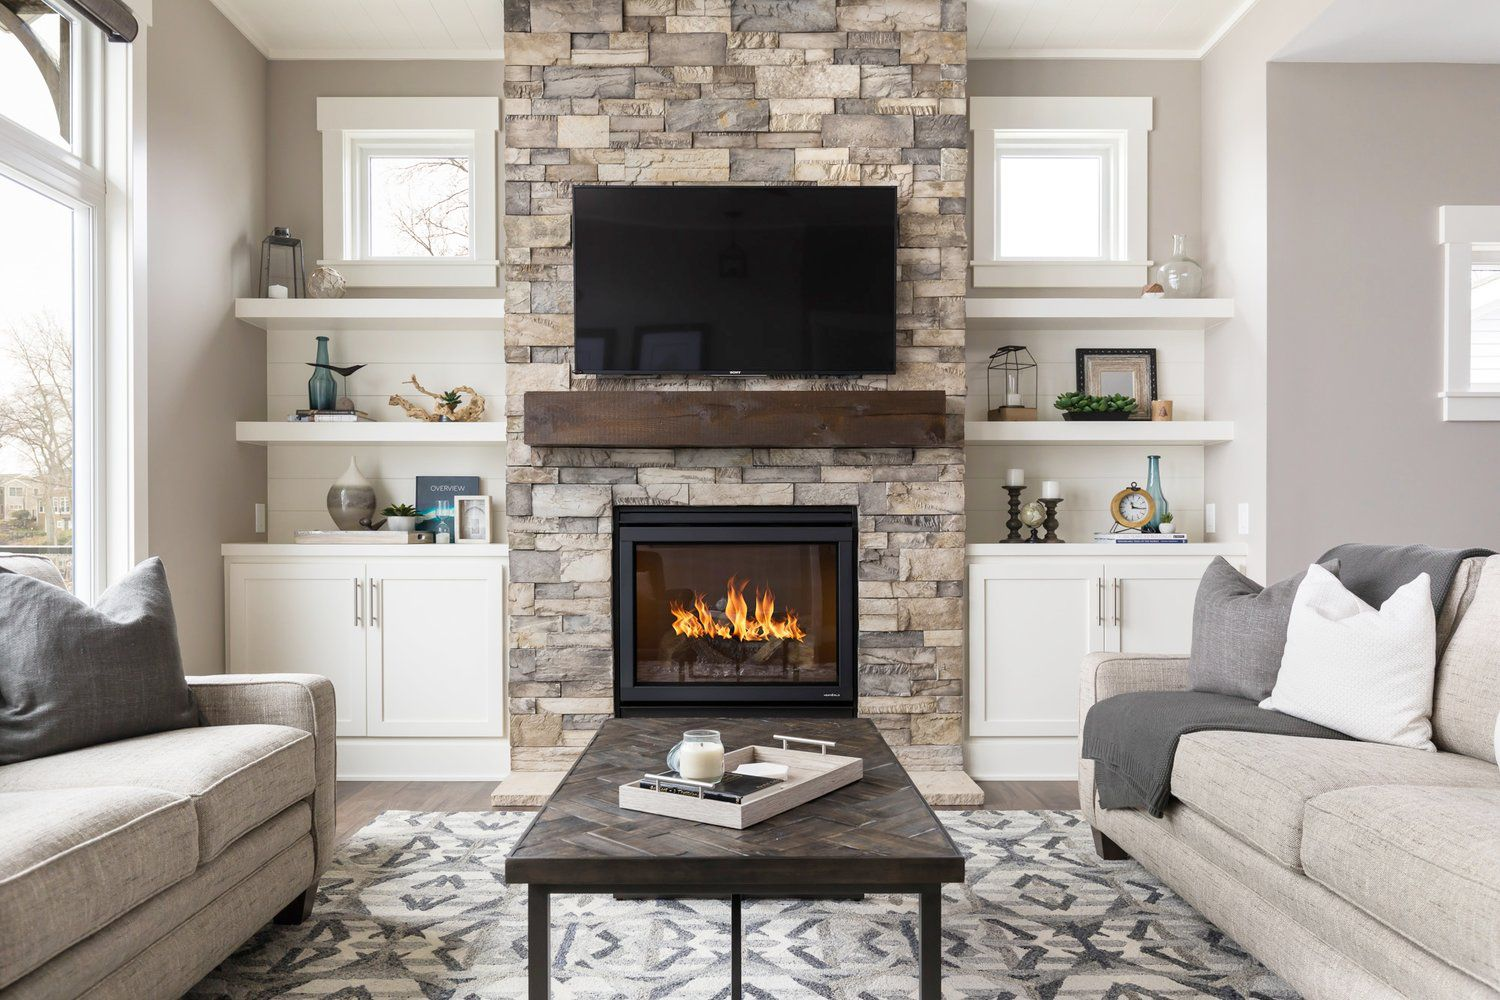 incredible living room designs fireplaces | Tualatin Property Management